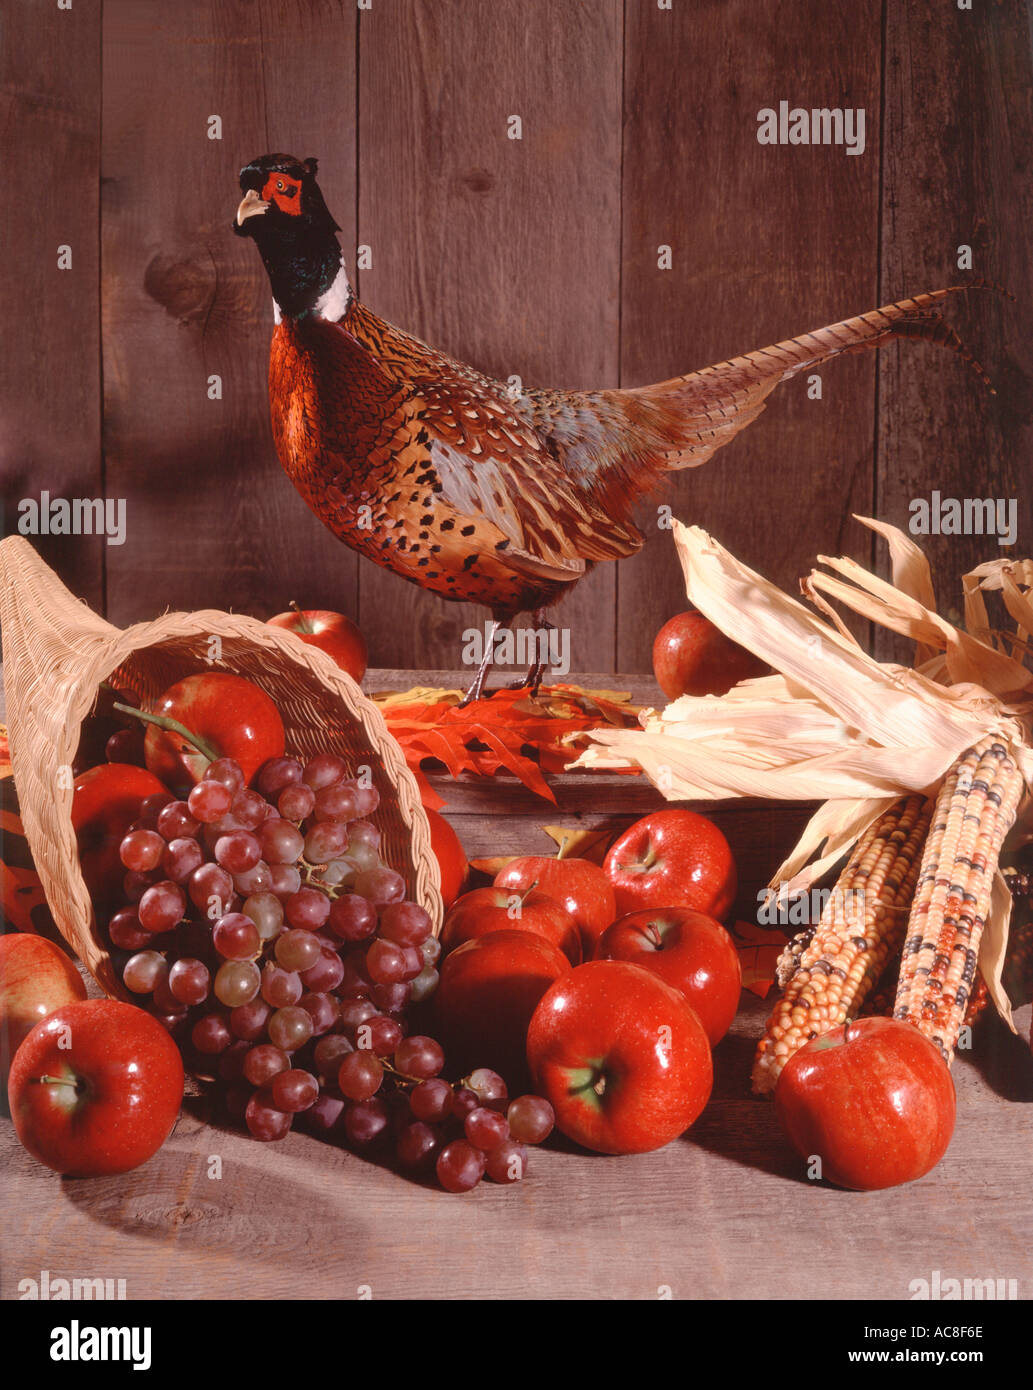 Harvest still life with cornucopia and pheasant against an old barnwood background in vertical format - Stock Image